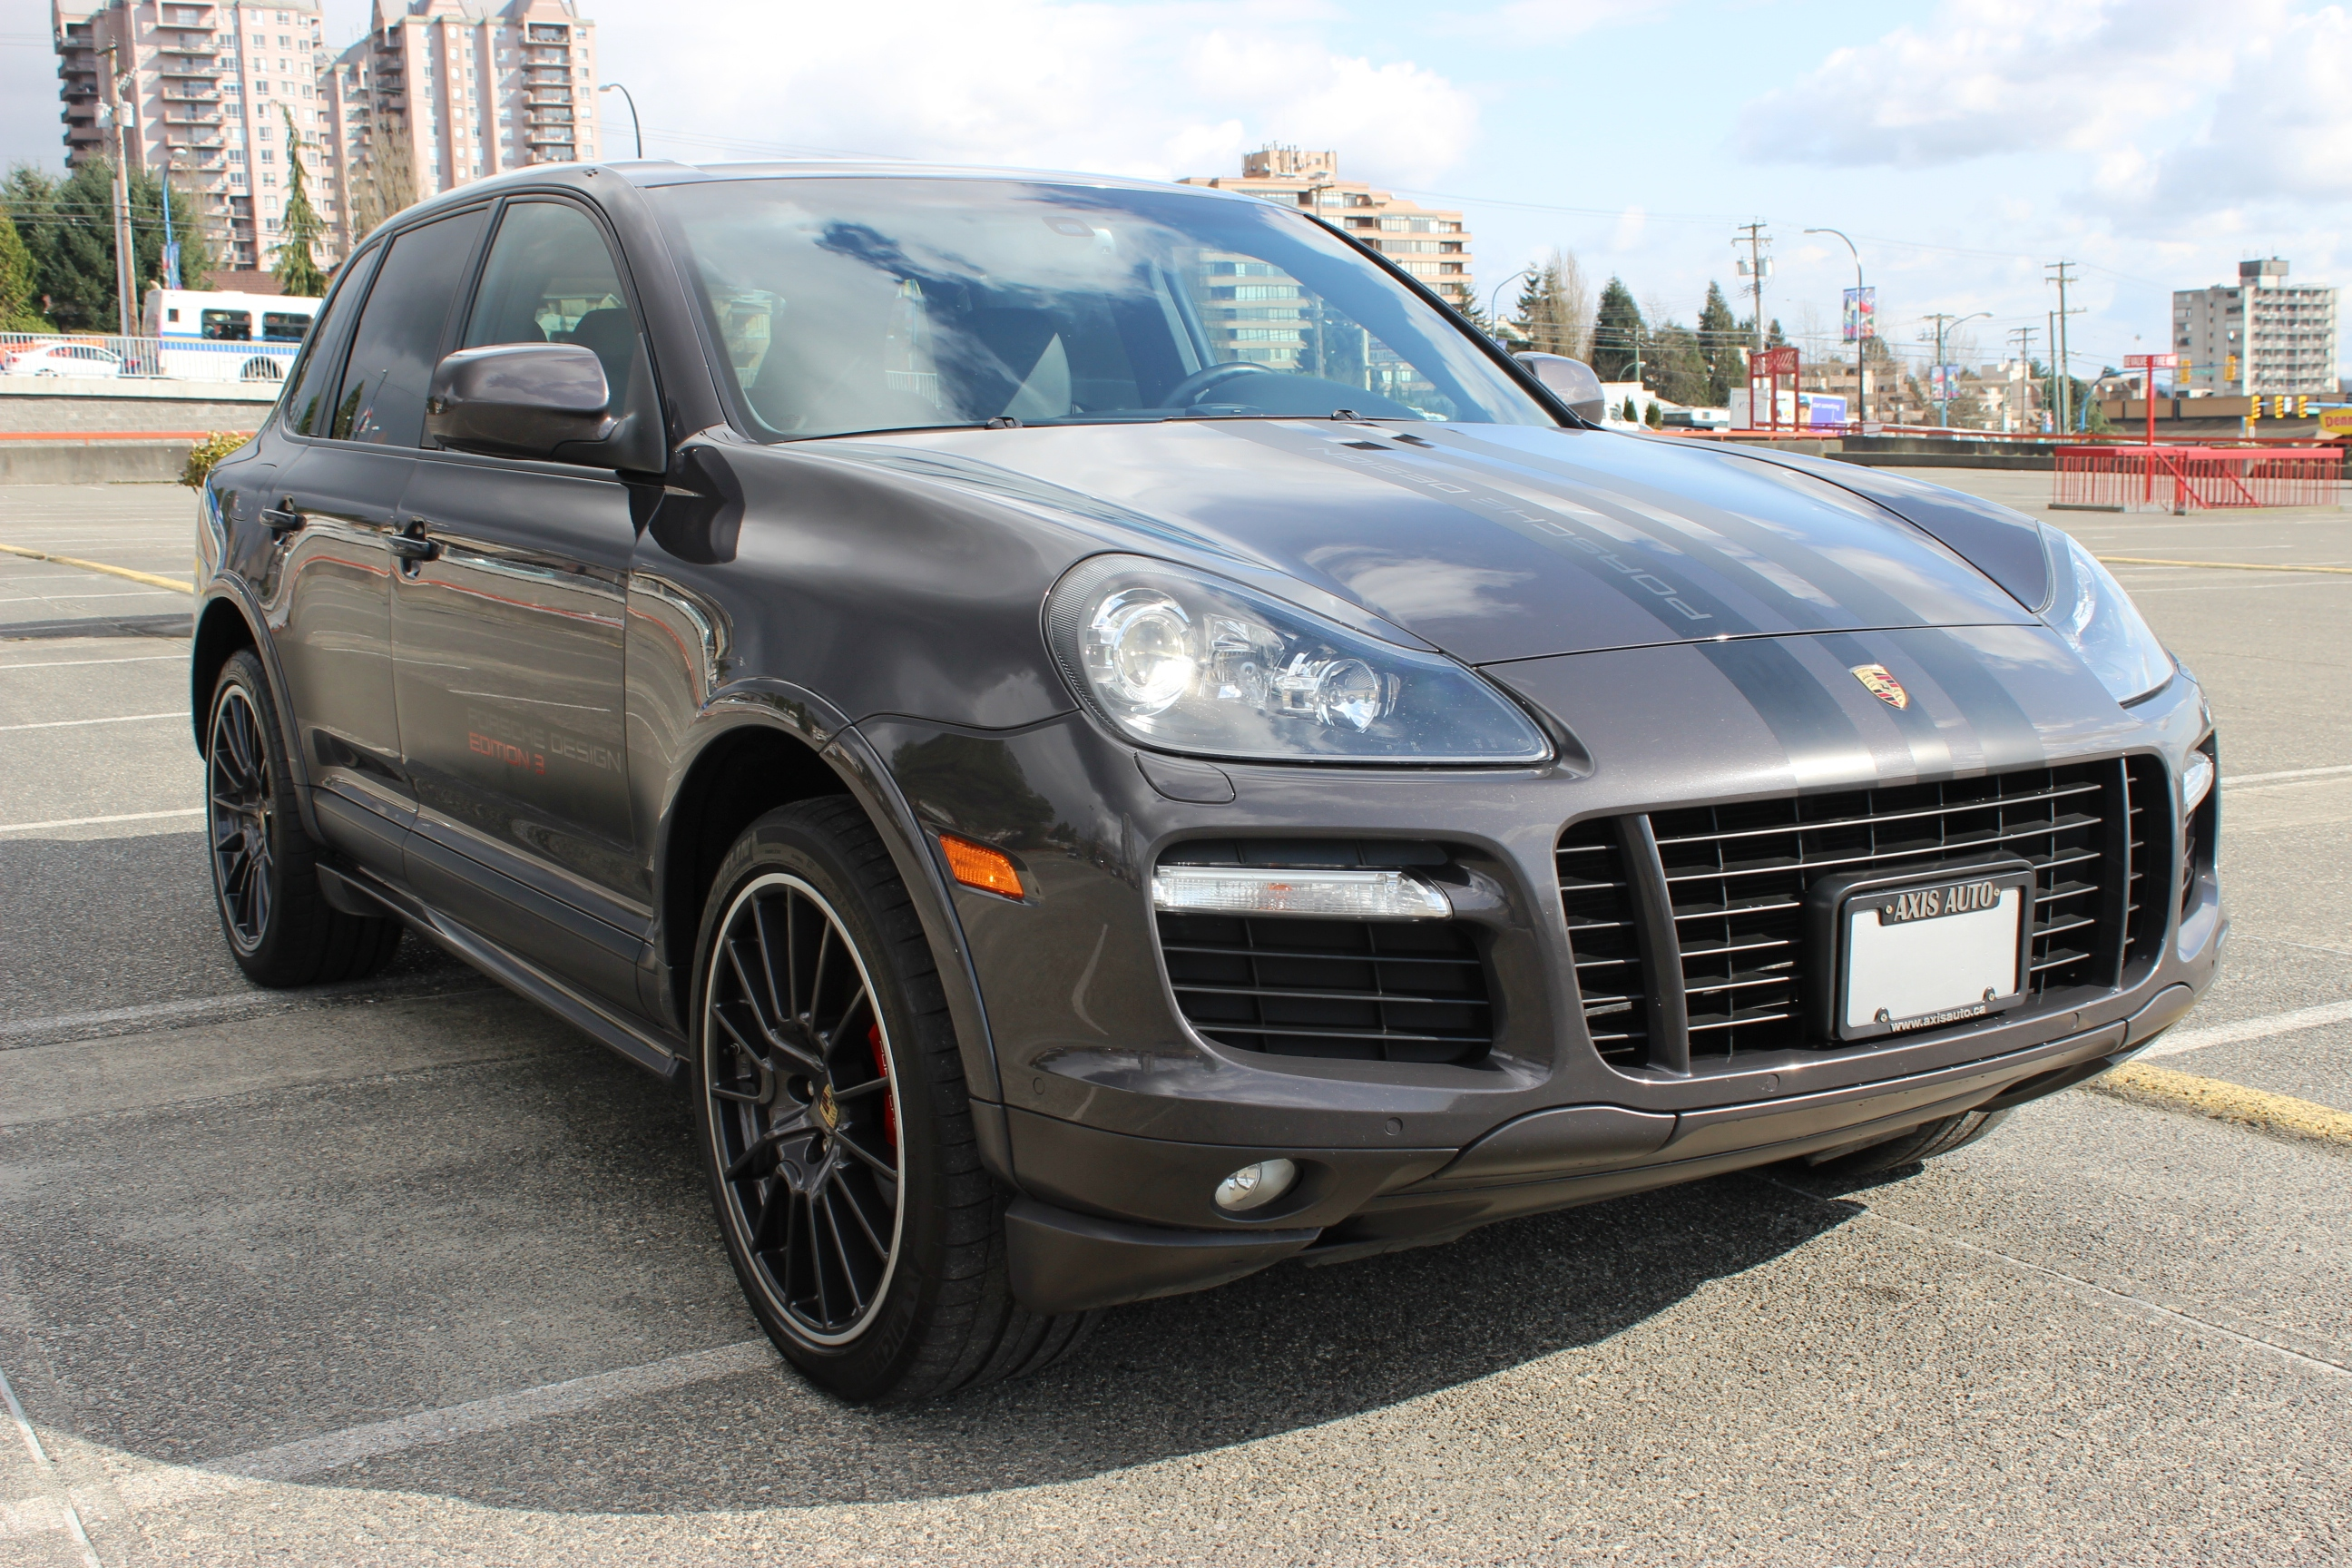 2010 porsche cayenne gts edition 3 axis auto. Black Bedroom Furniture Sets. Home Design Ideas